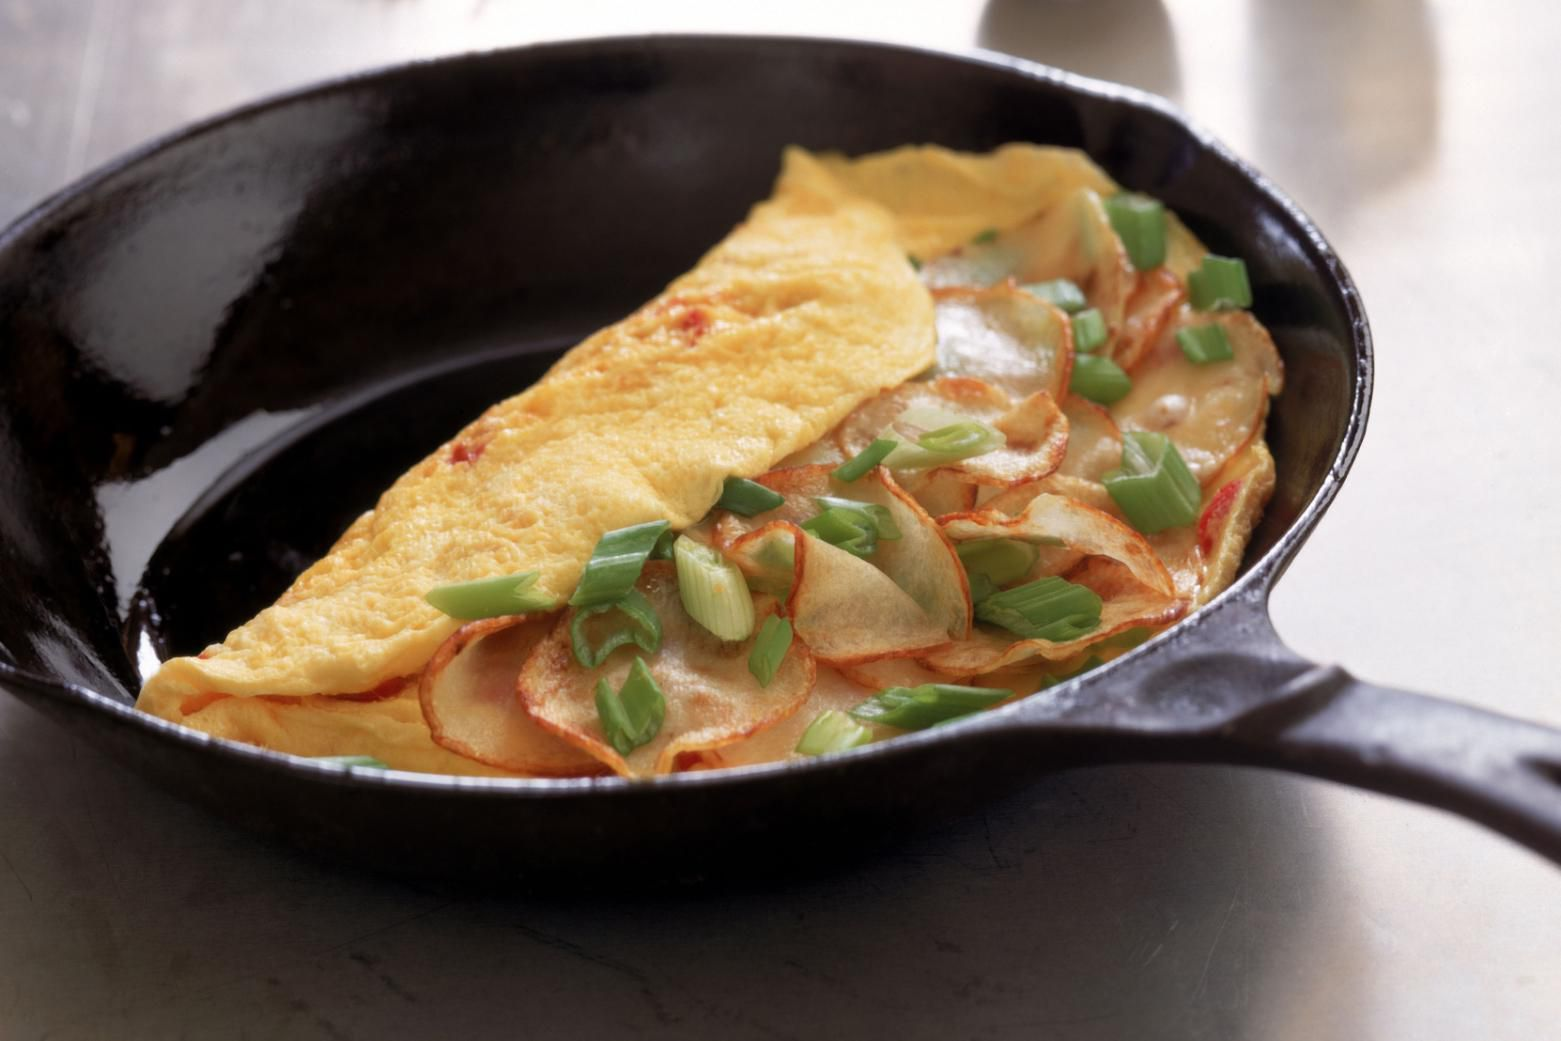 Low-calorie snacks for beer. What to cook for beer